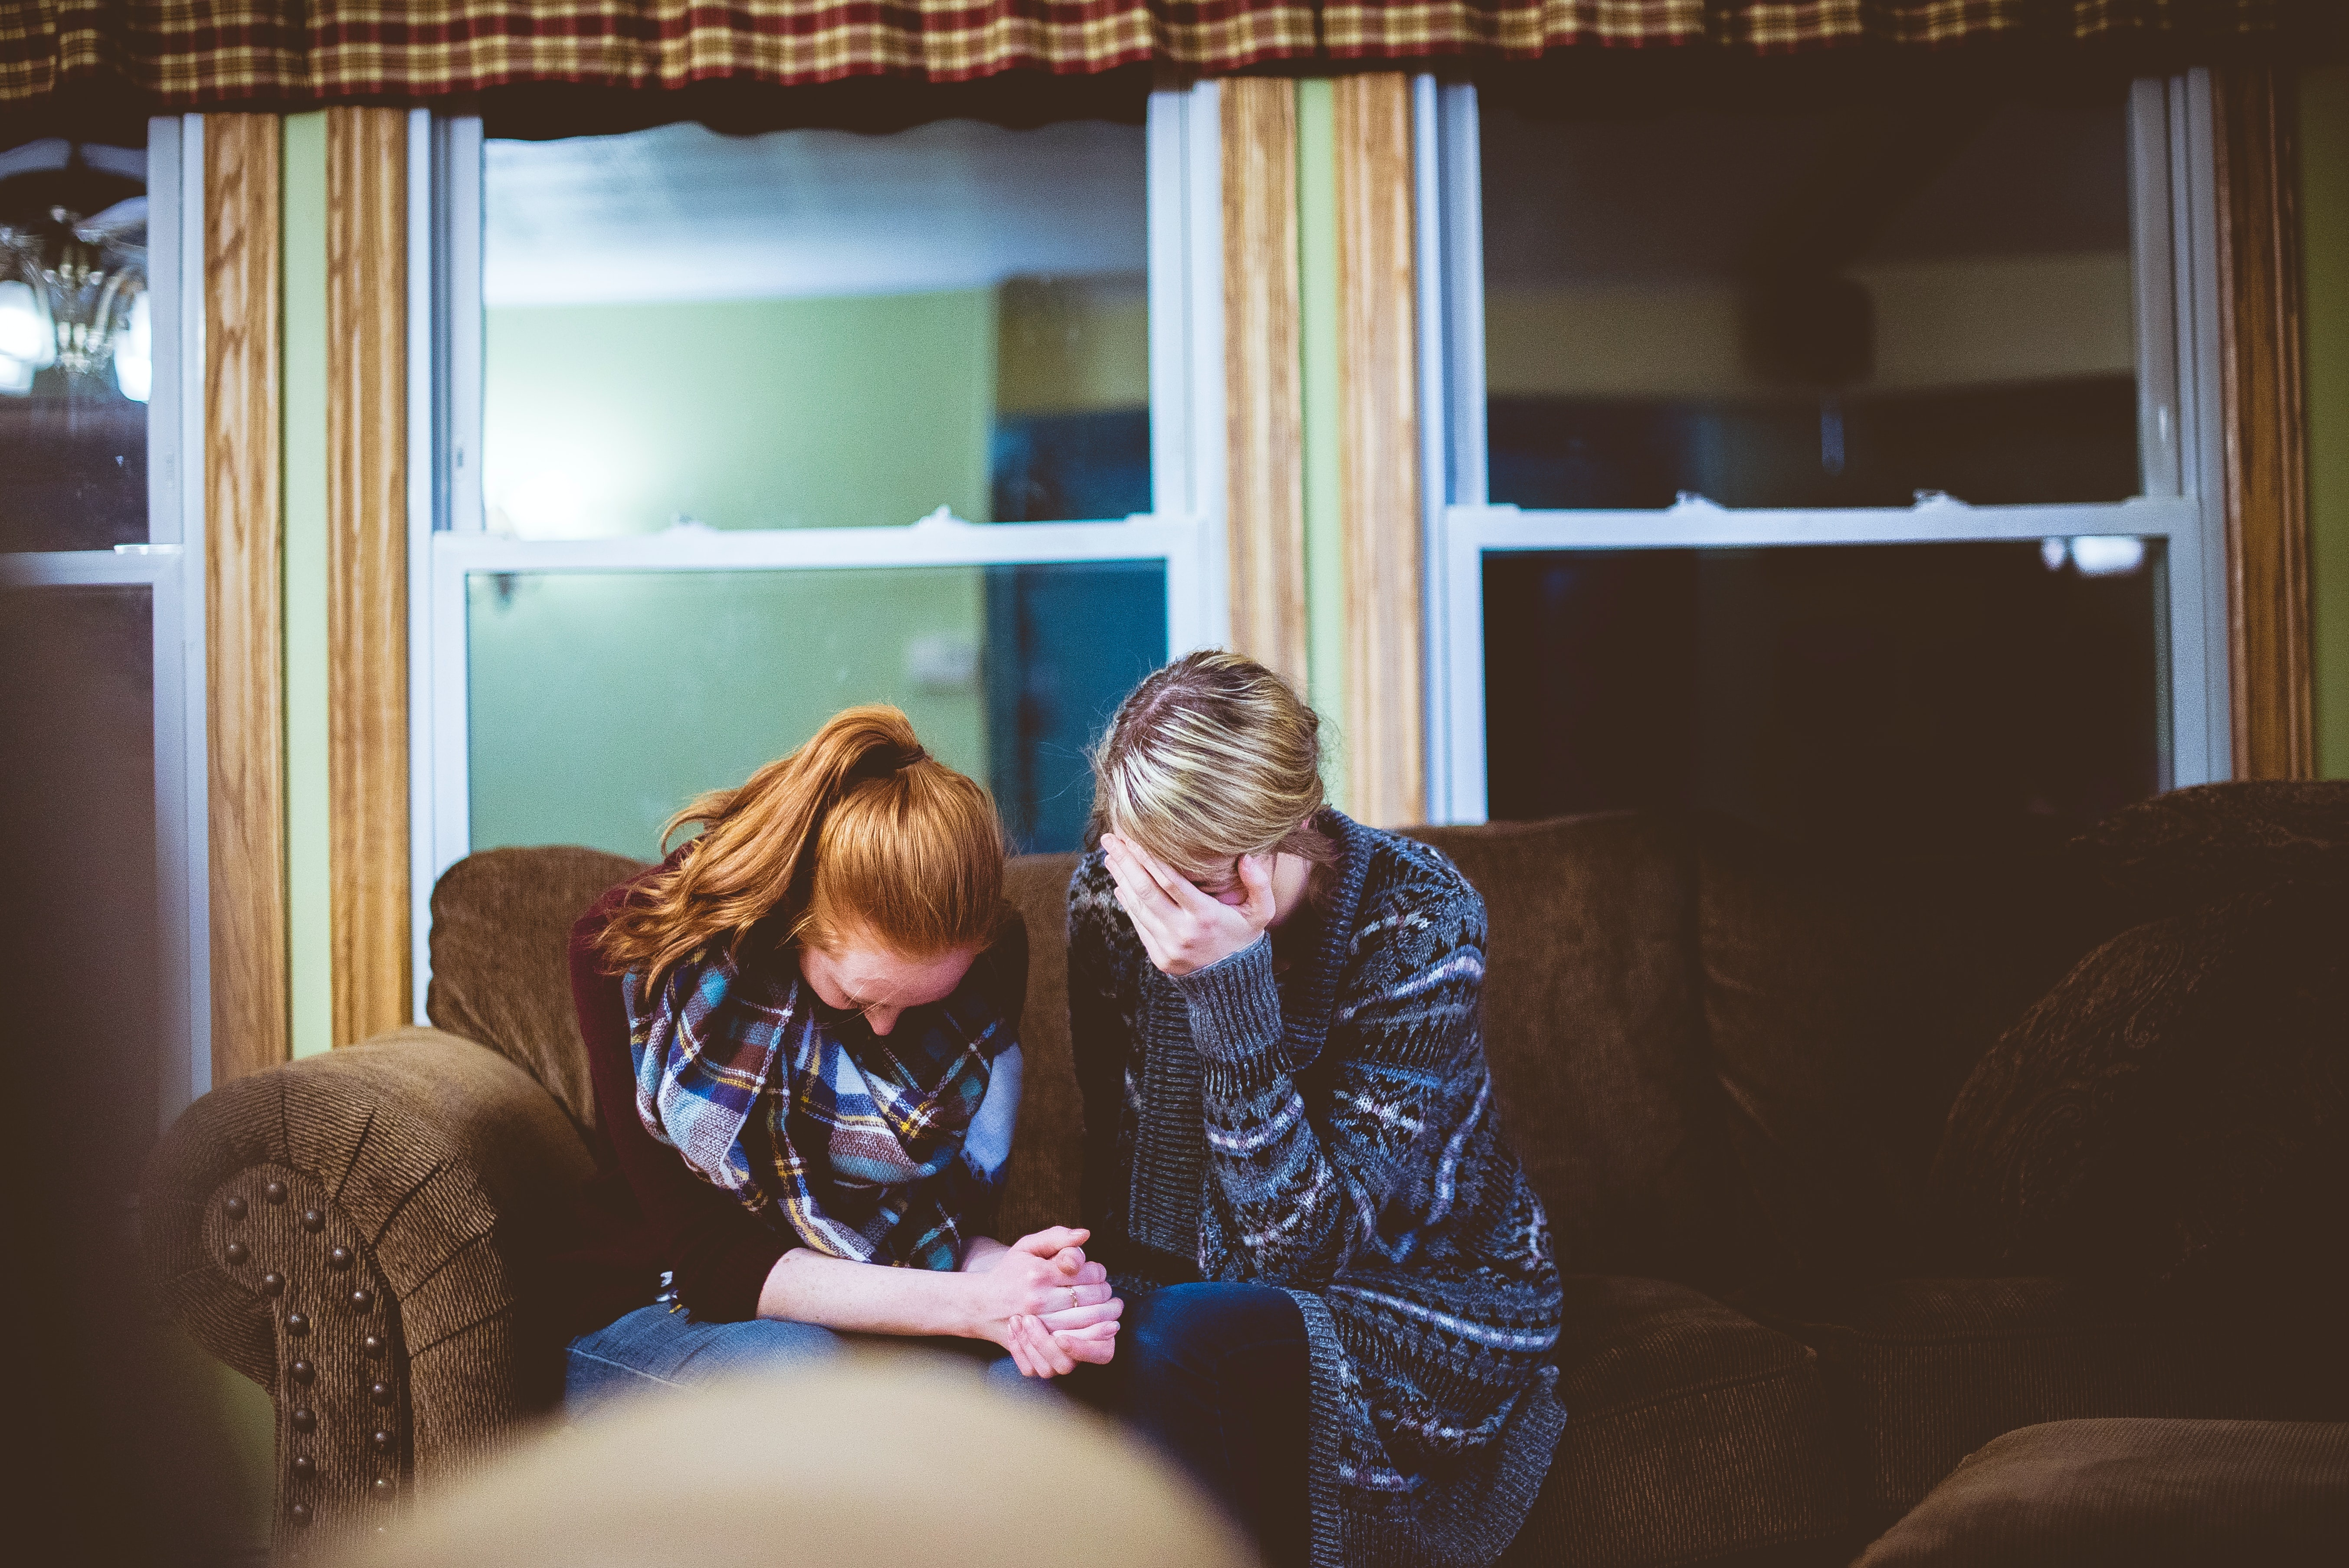 Photo of two women sitting on the couch grieving.